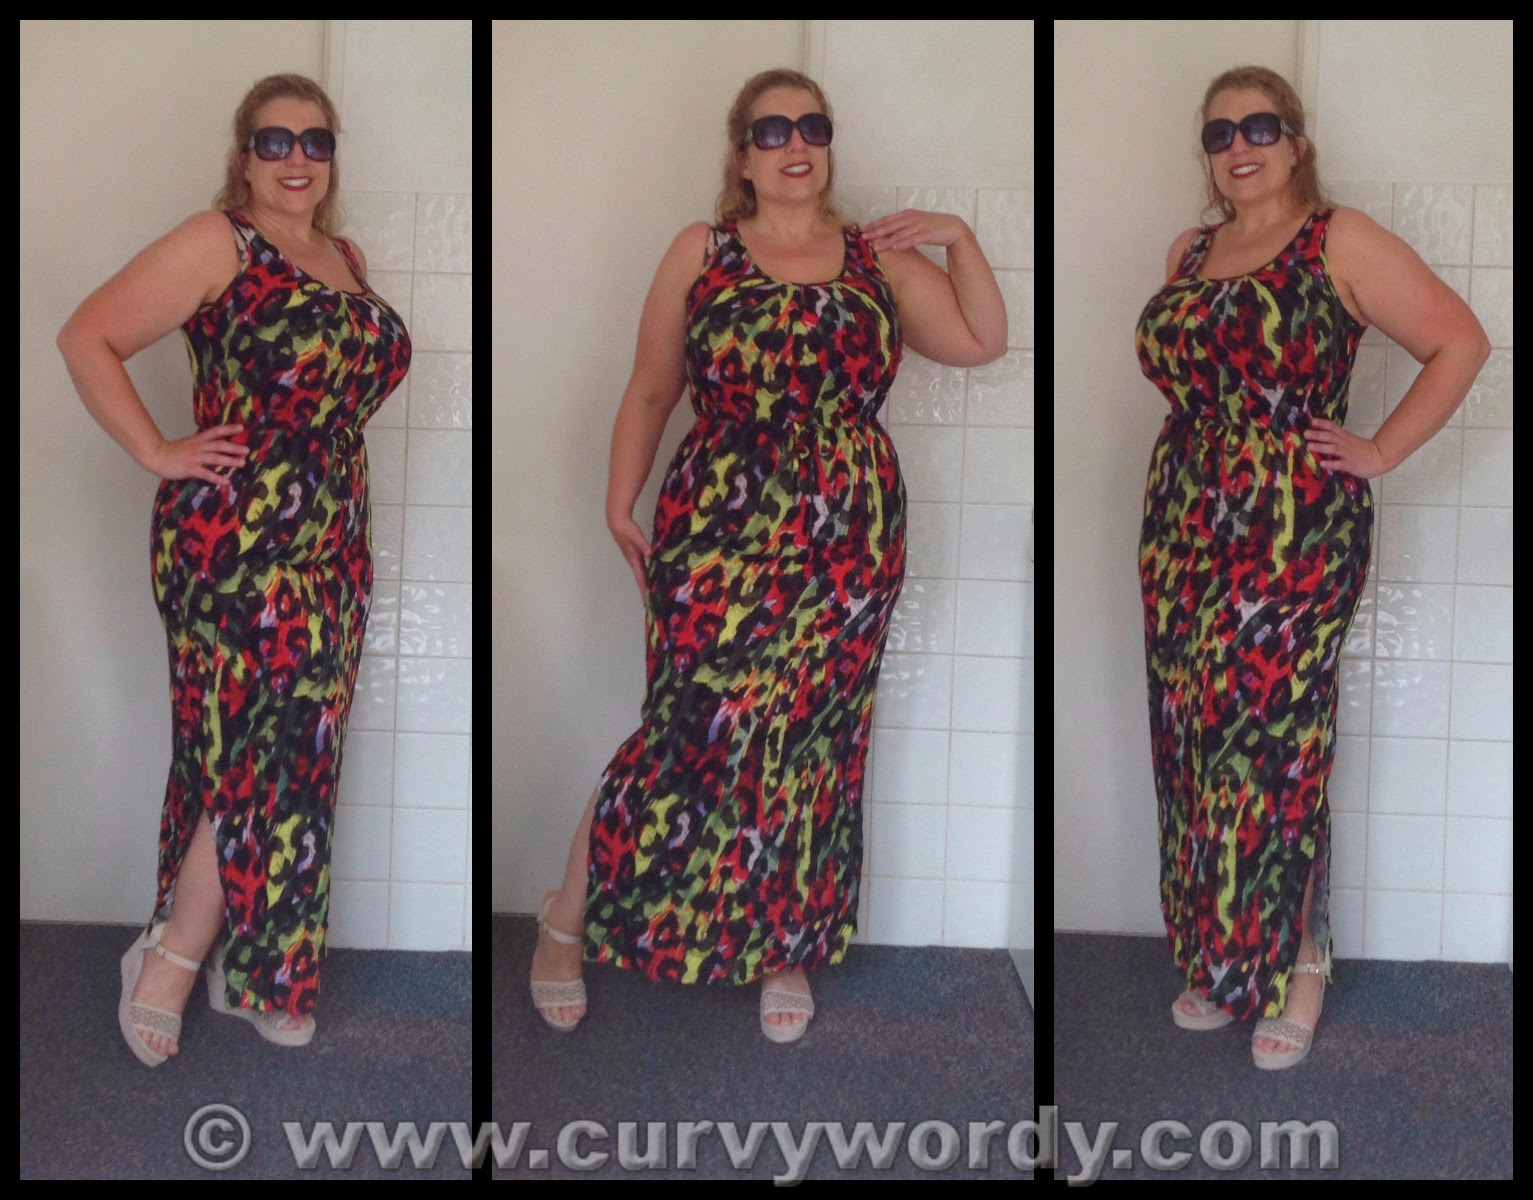 42ff5dd2b25 I very rarely bare my legs so it came as a surprise to me when I found  myself adding the Animal Print Maxi Dress (£12.00